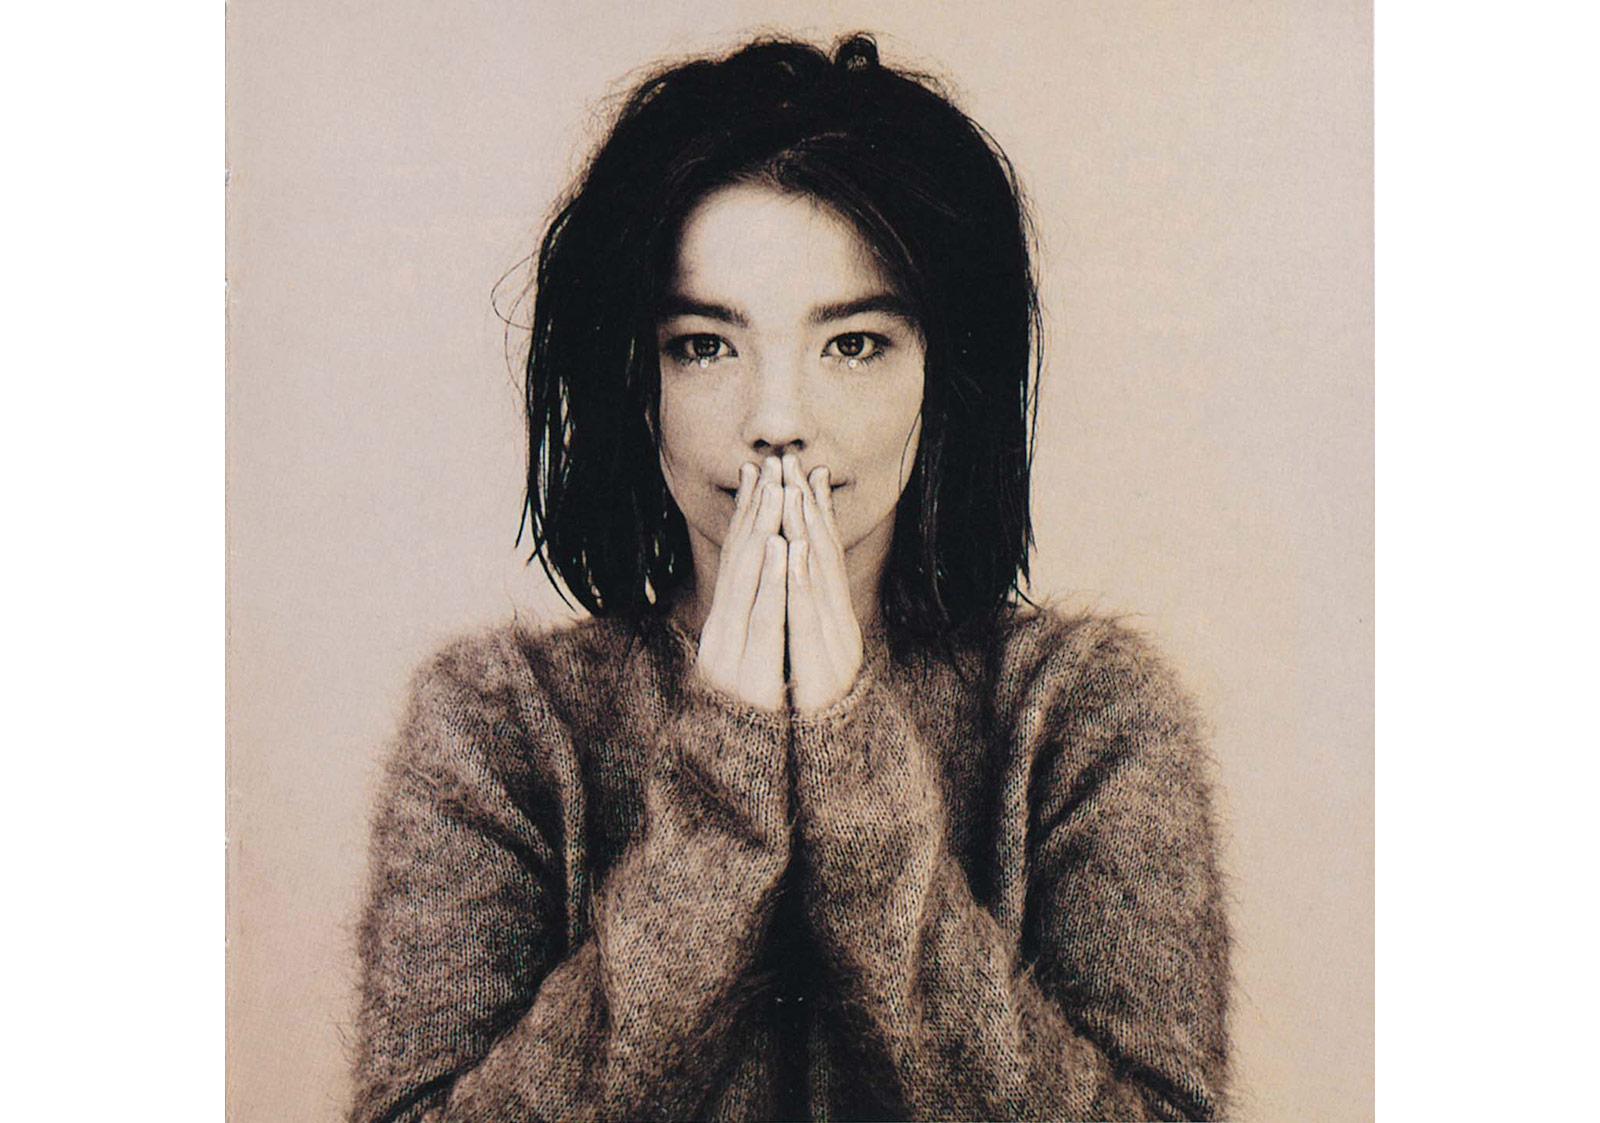 Björk, Debut, 1993.Credit: Photography by Jean Baptiste Mondino. Image courtesy of Wellhart Ltd & One Little Indian